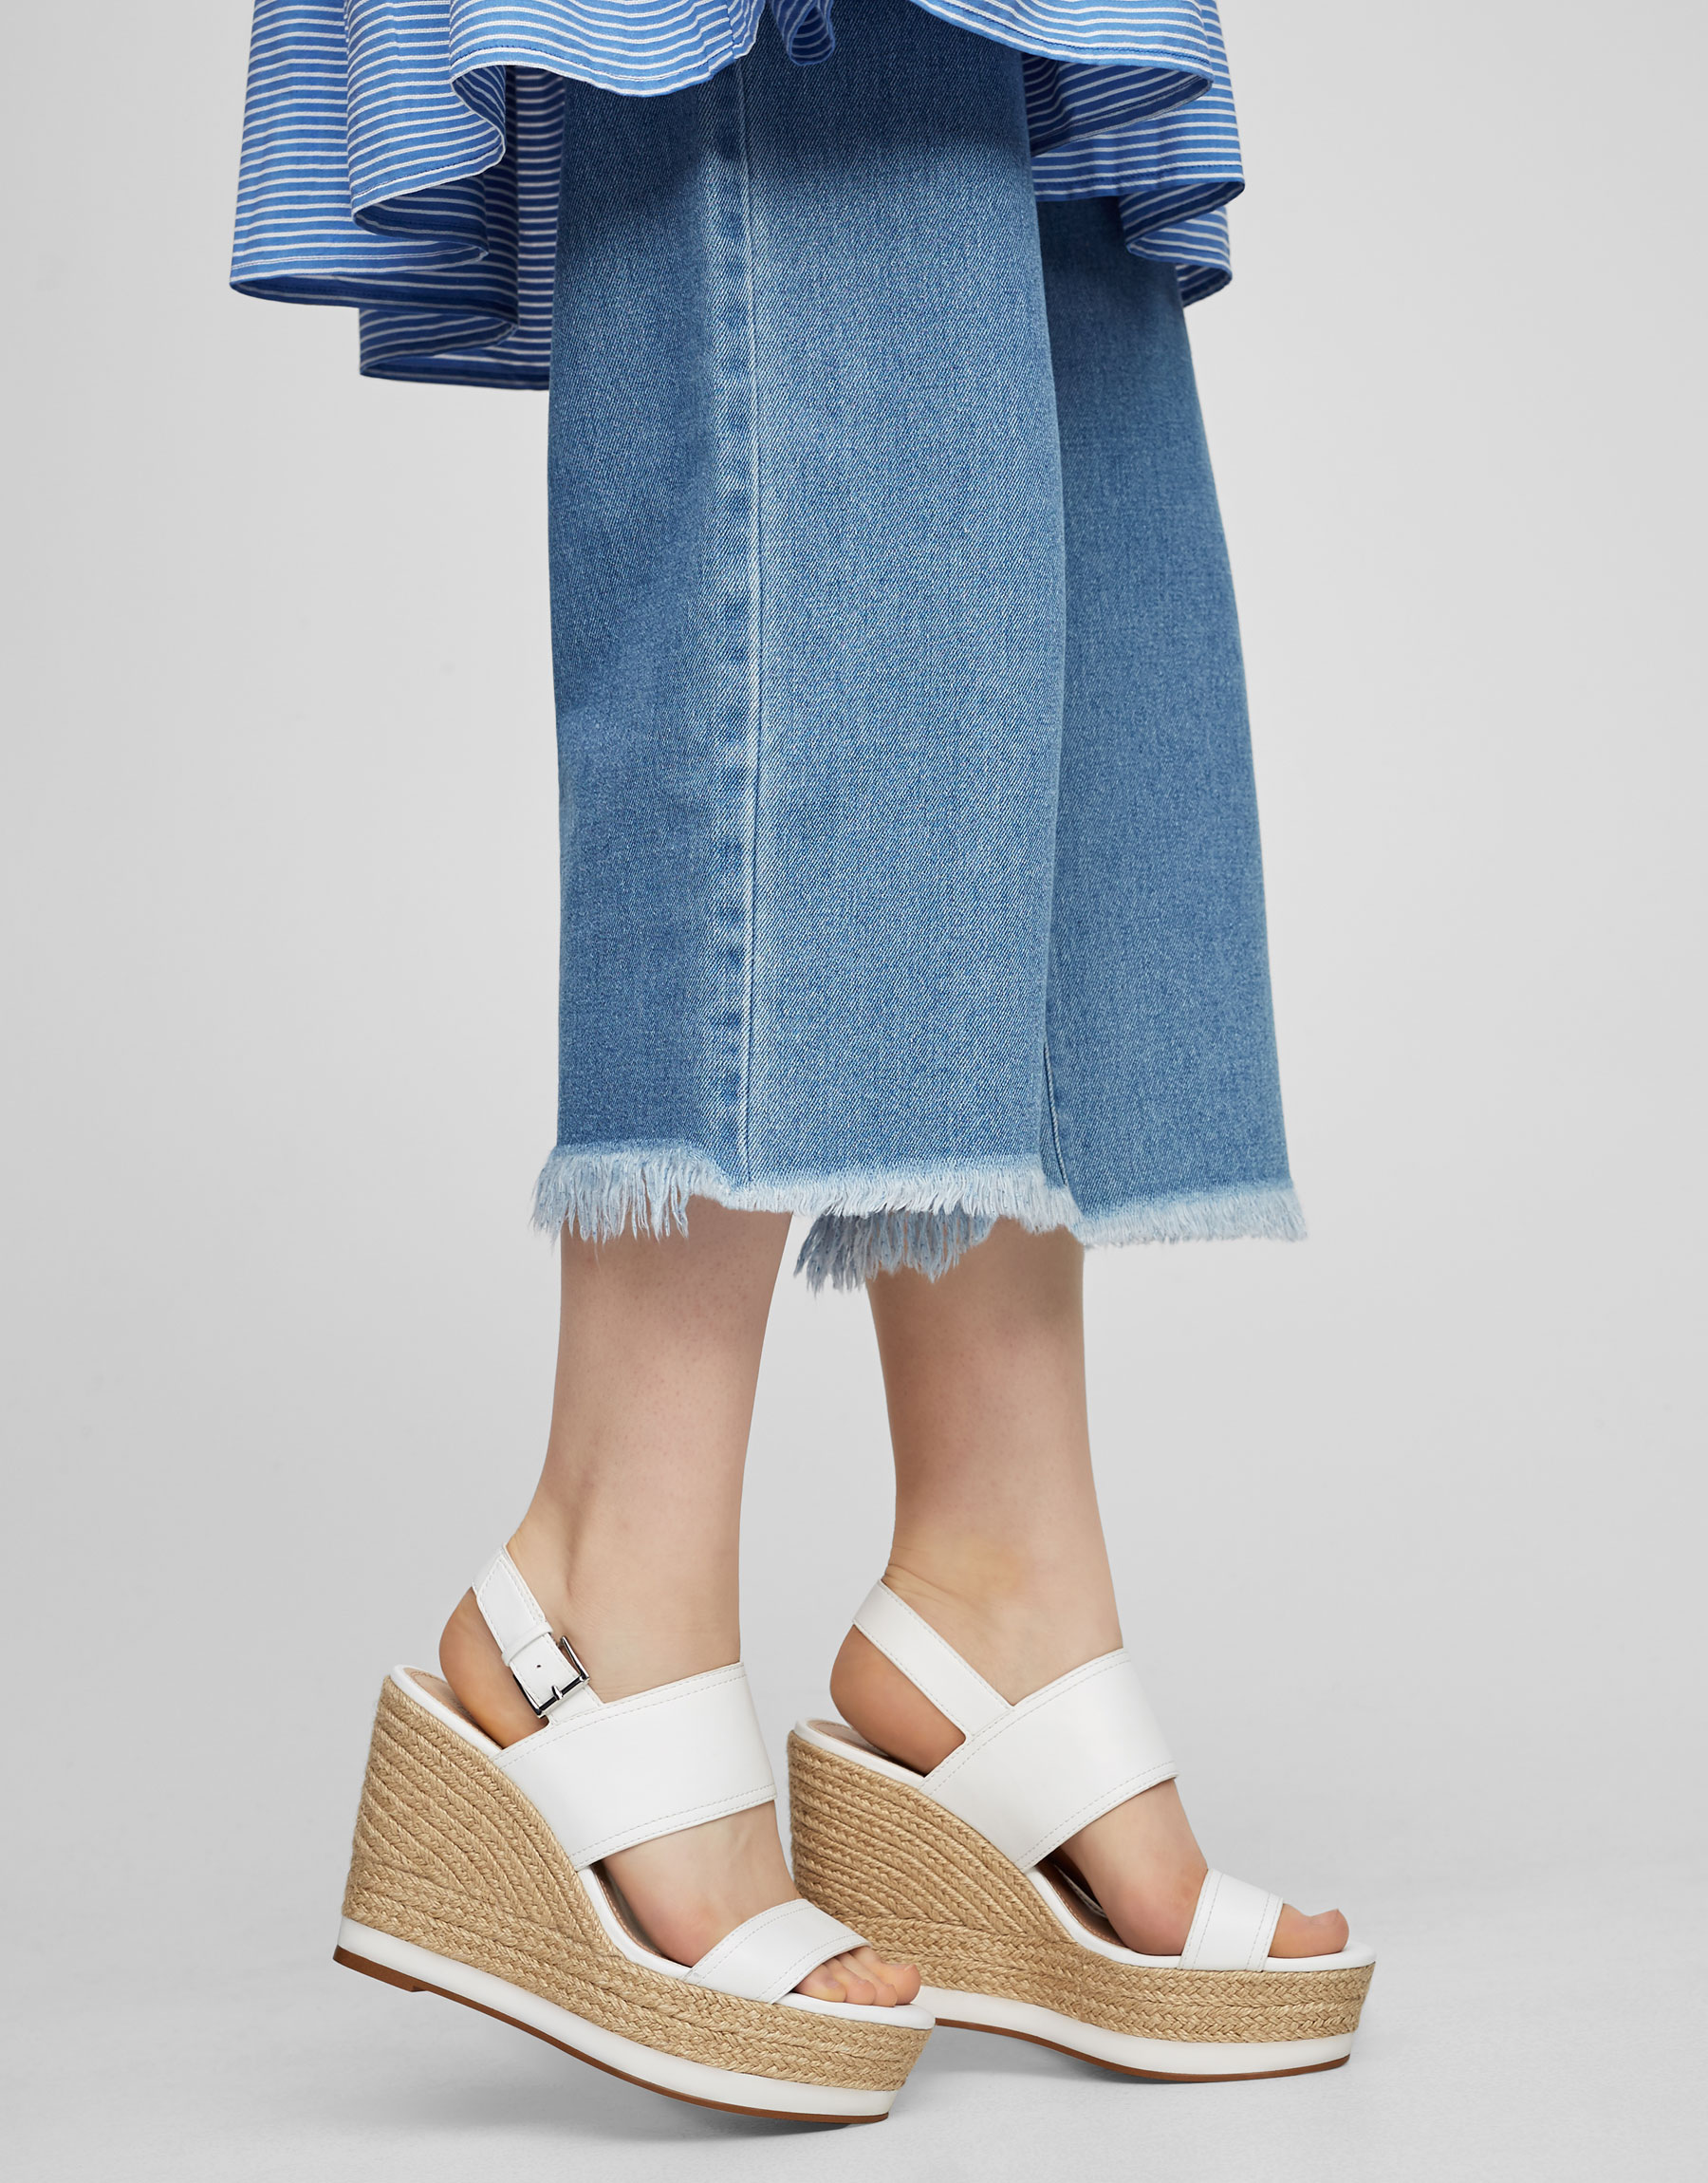 Jute wedges with white straps